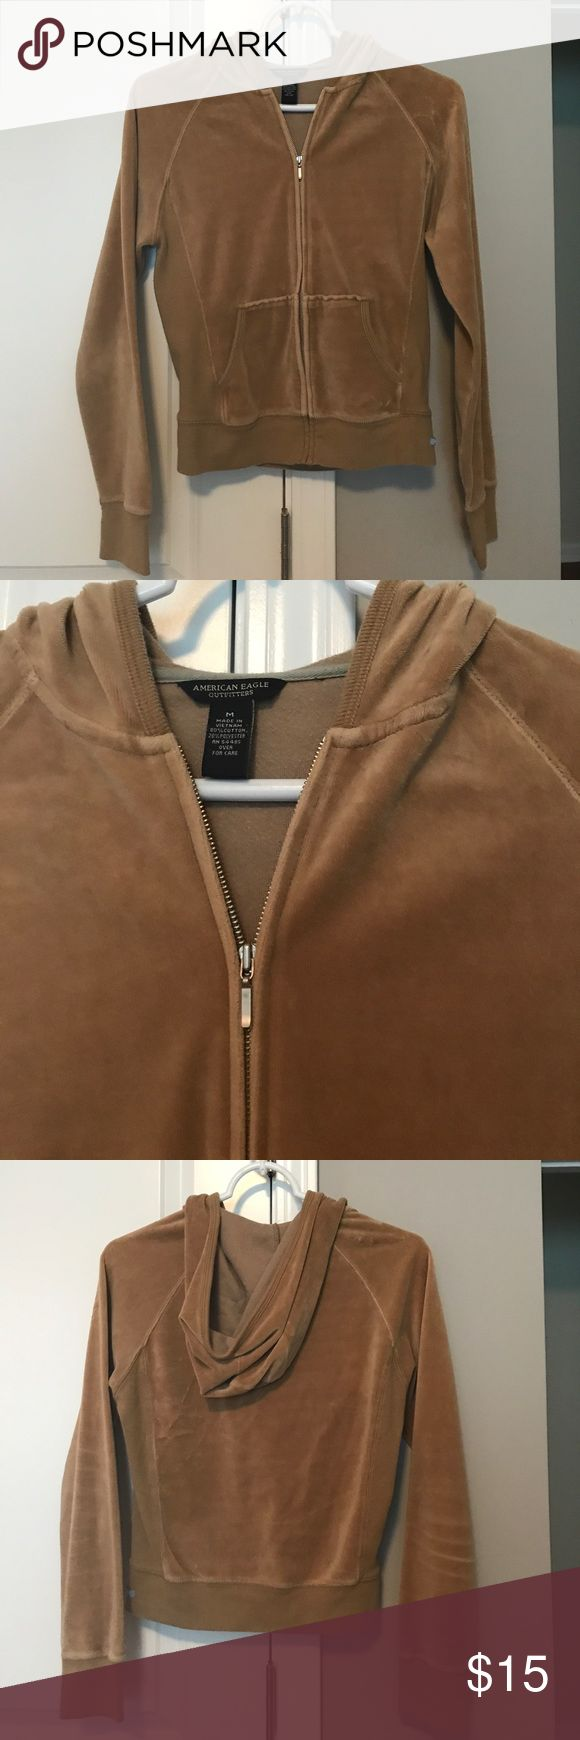 Camel Colored Velour Zip Up Hoodie Camel Colored Velour Zip Up Hoodie from American Eagle Outfitters. Has pockets in the front. Size Medium. Smoke Free Home American Eagle Outfitters Jackets & Coats